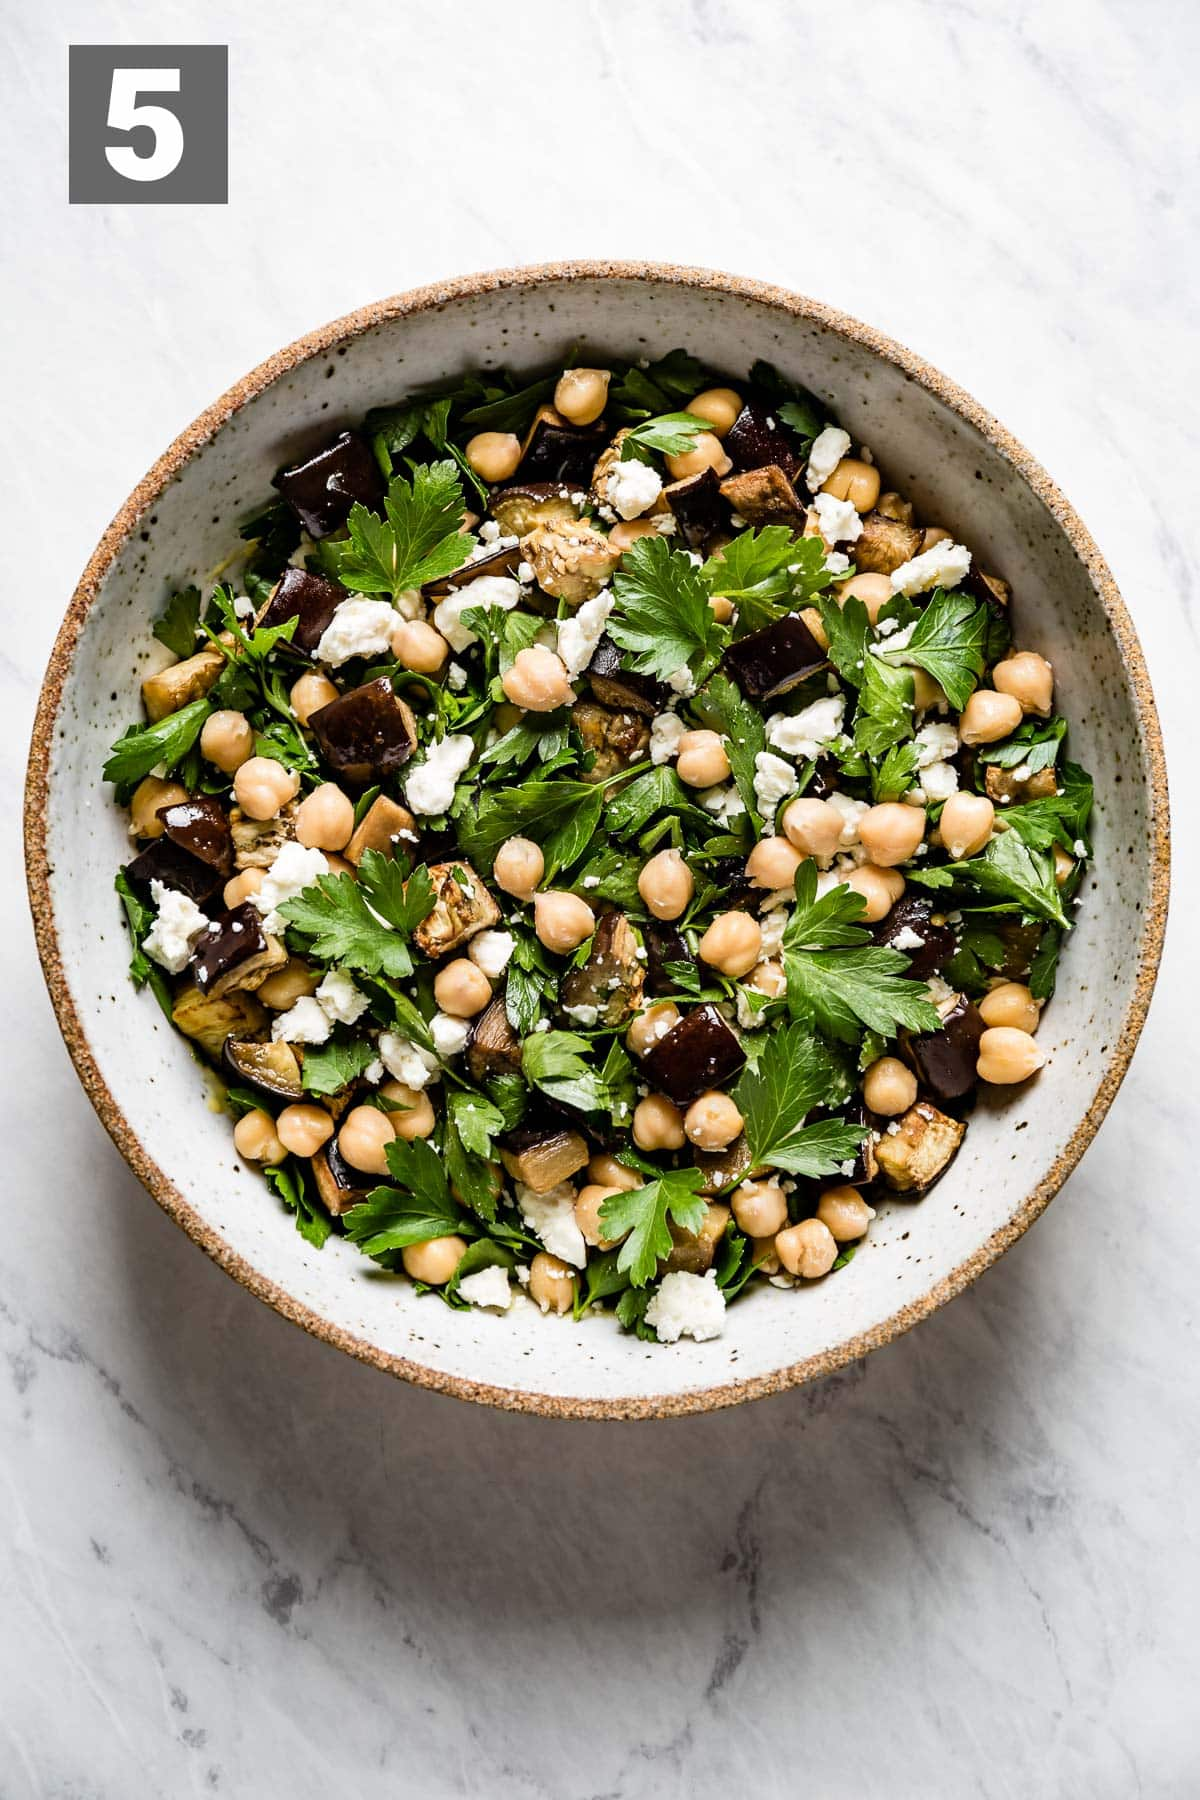 mix the eggplant, parsley, and chickpeas into the dressing